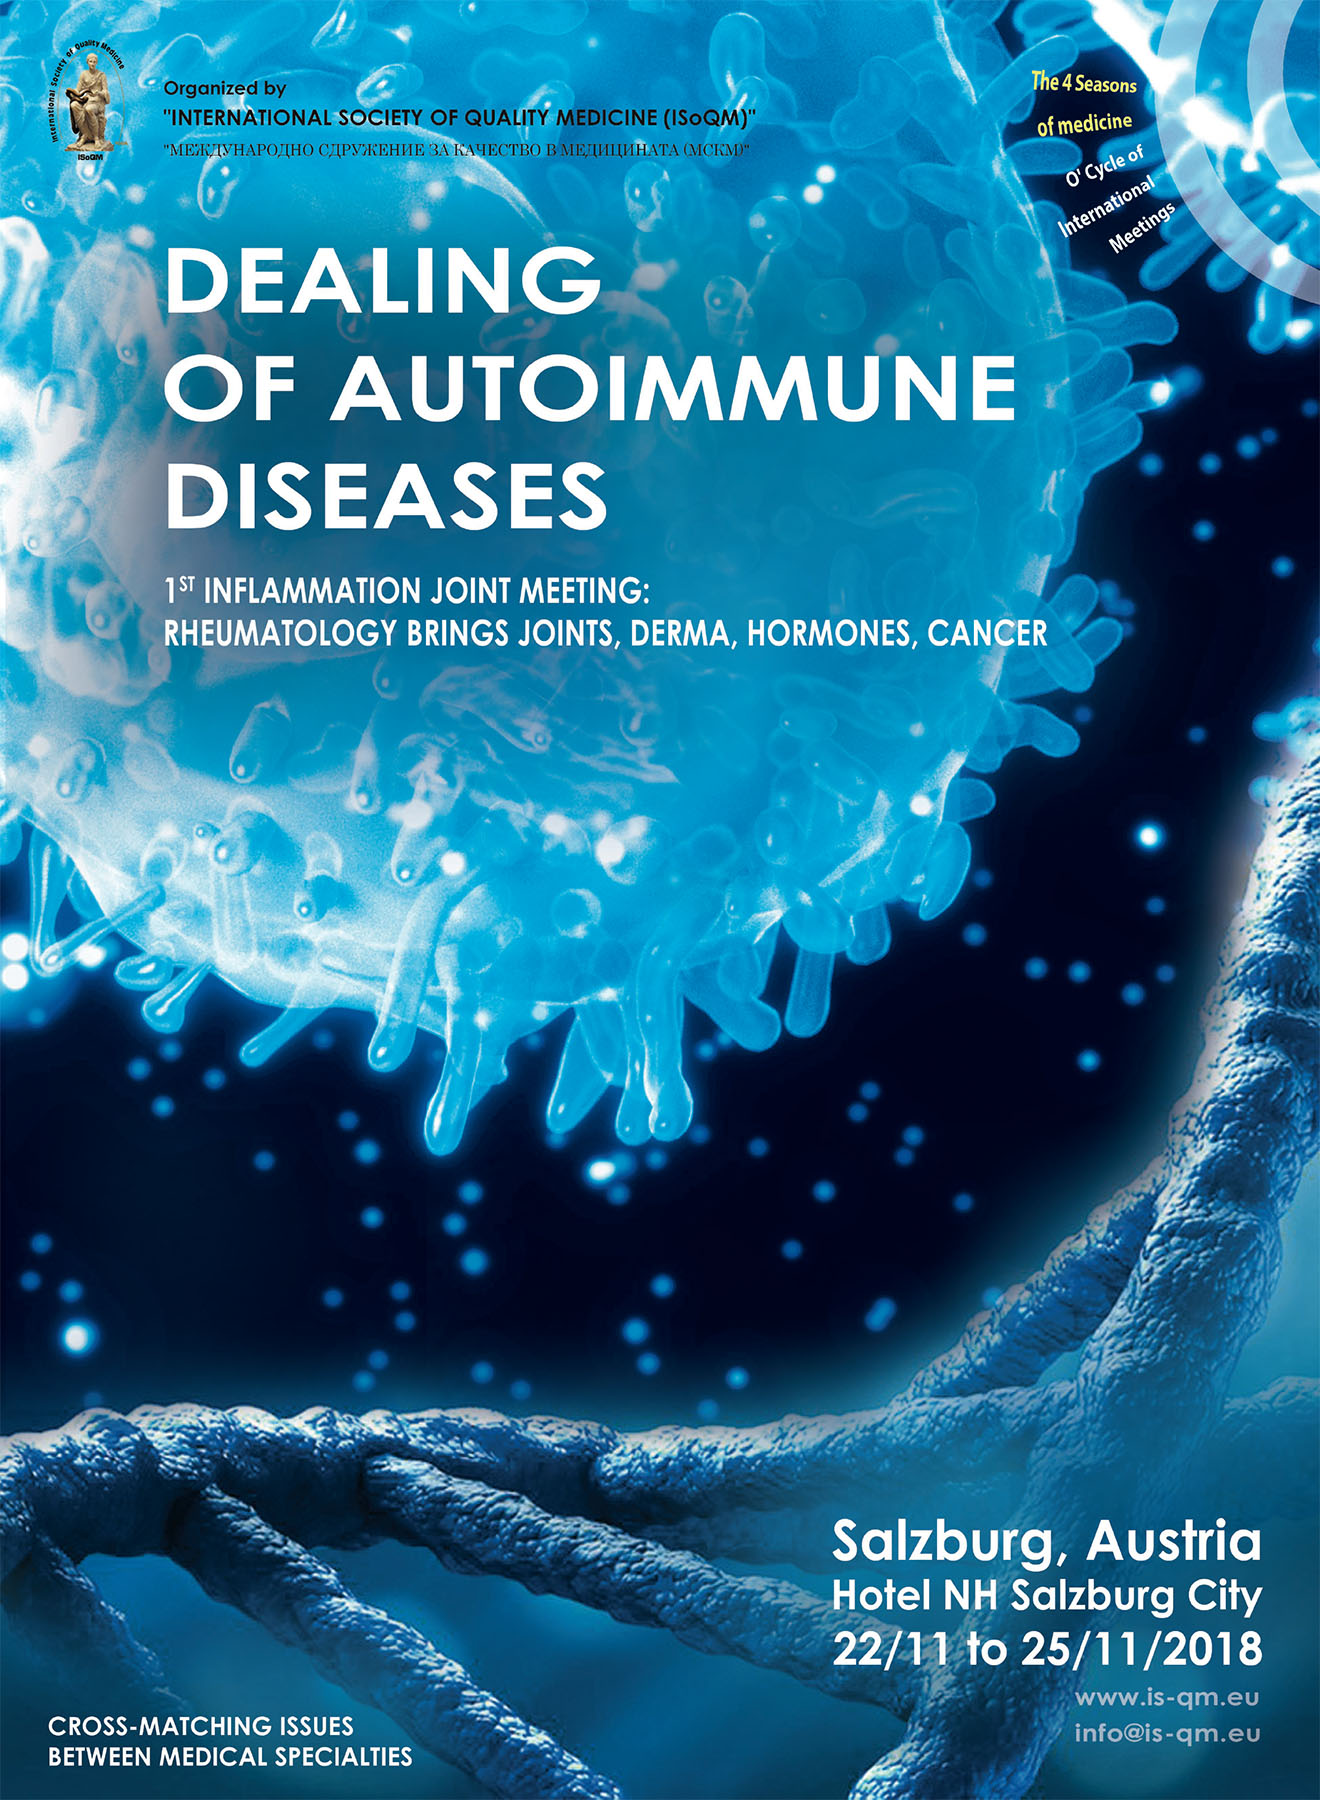 399. Dealing of Autoimmune Diseases - 1st Inflammation Joint Meeting: Rheumatology Brings Joints, Derma, Hormones, Cancer